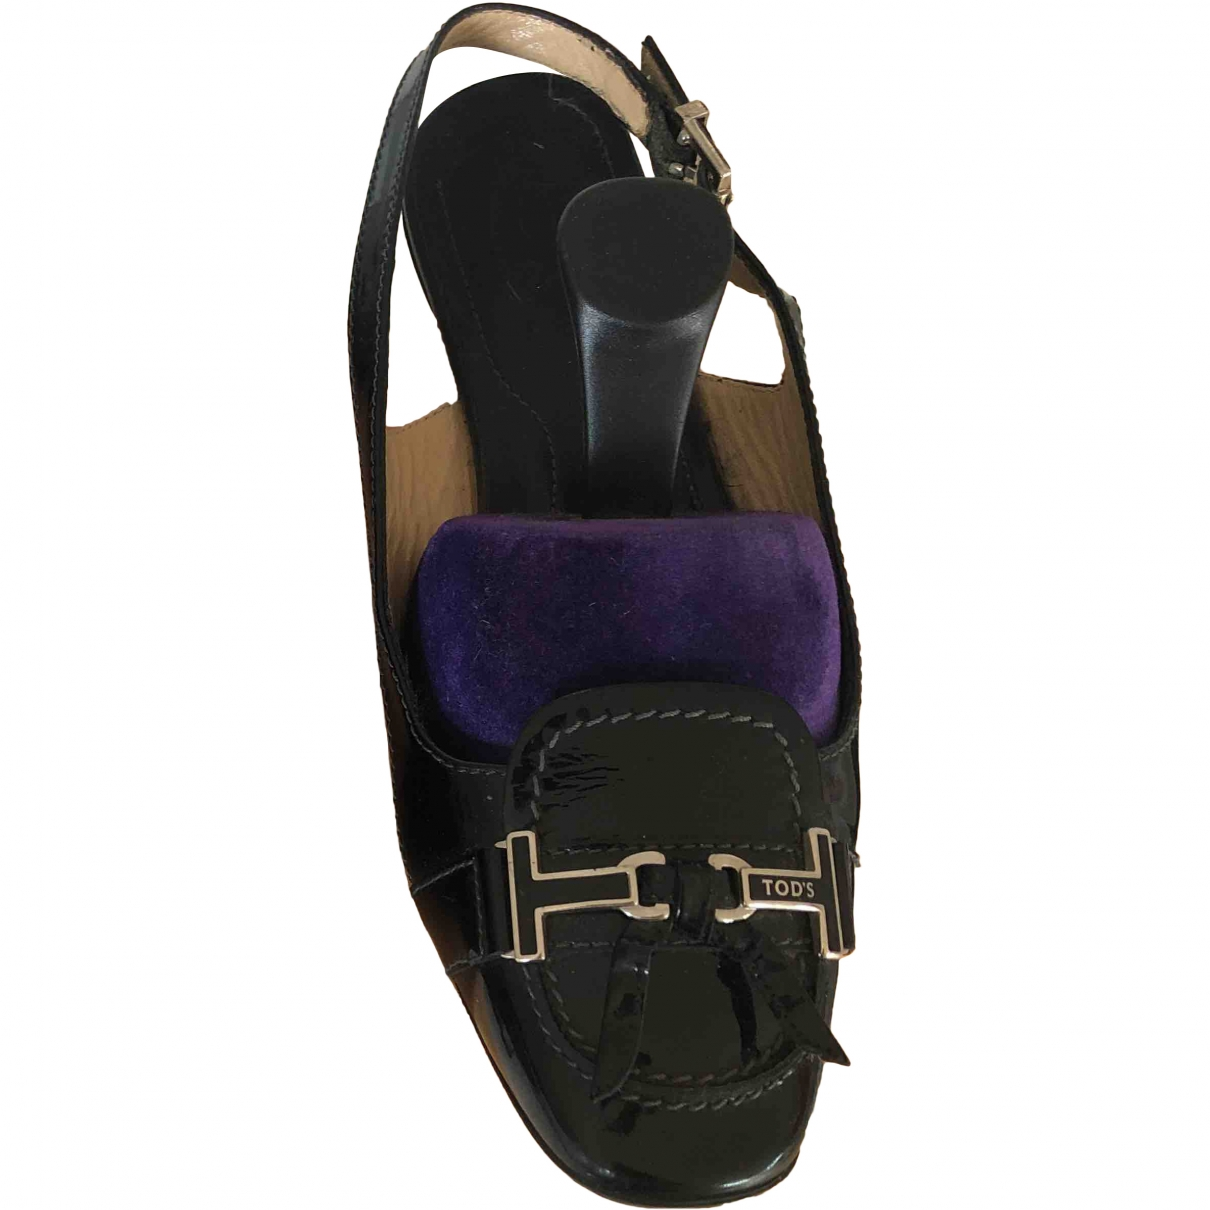 Tod's \N Black Patent leather Sandals for Women 38 EU